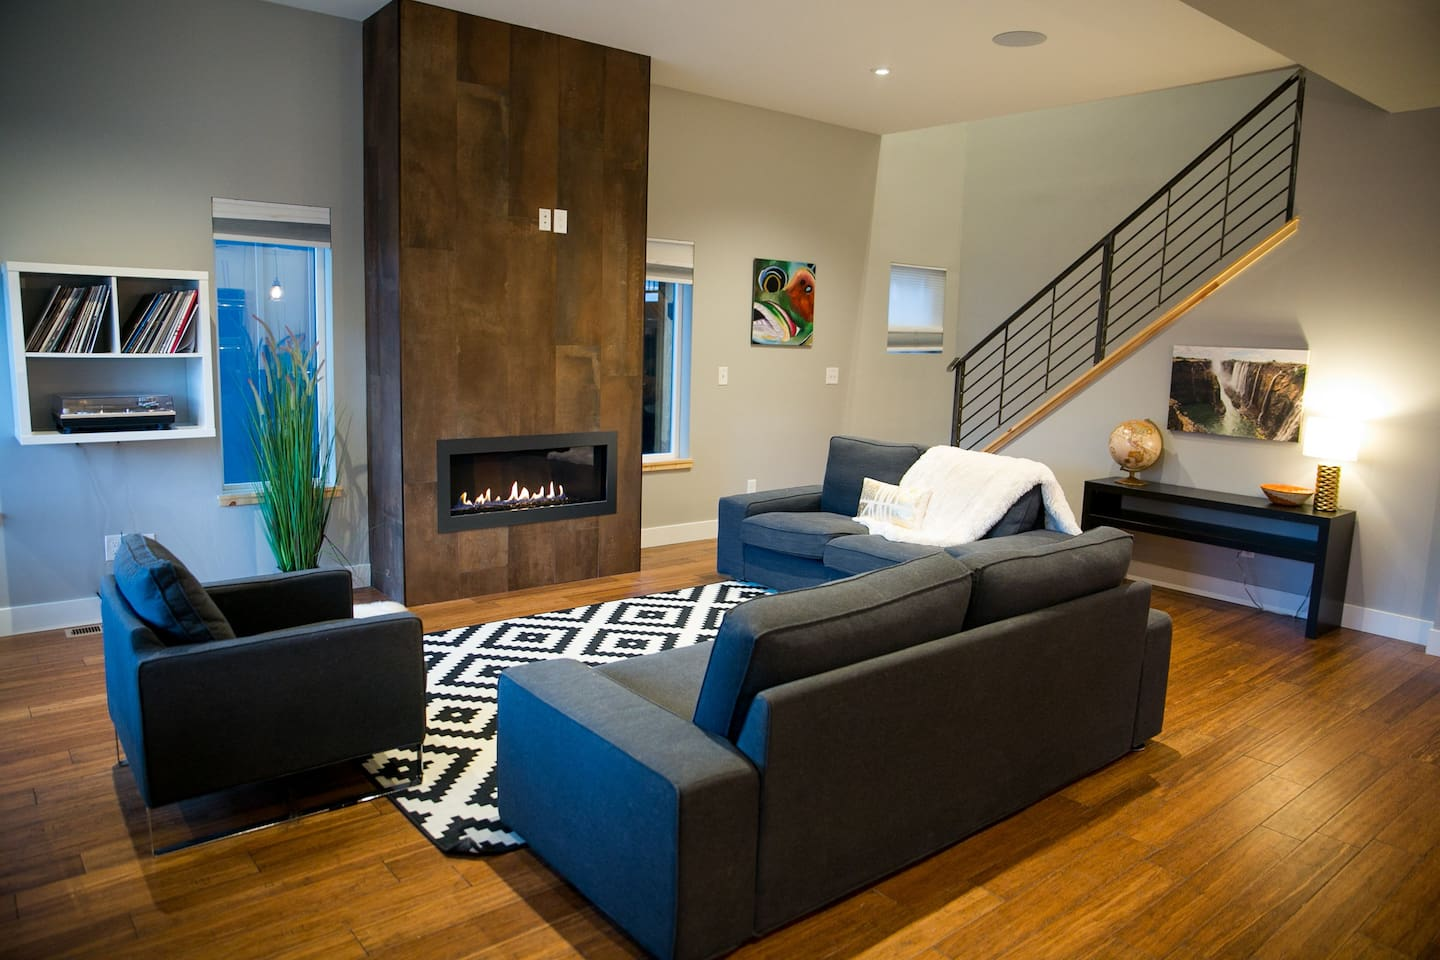 The living room area features a gas fireplace and the stairs have a custom welded steel handrail.